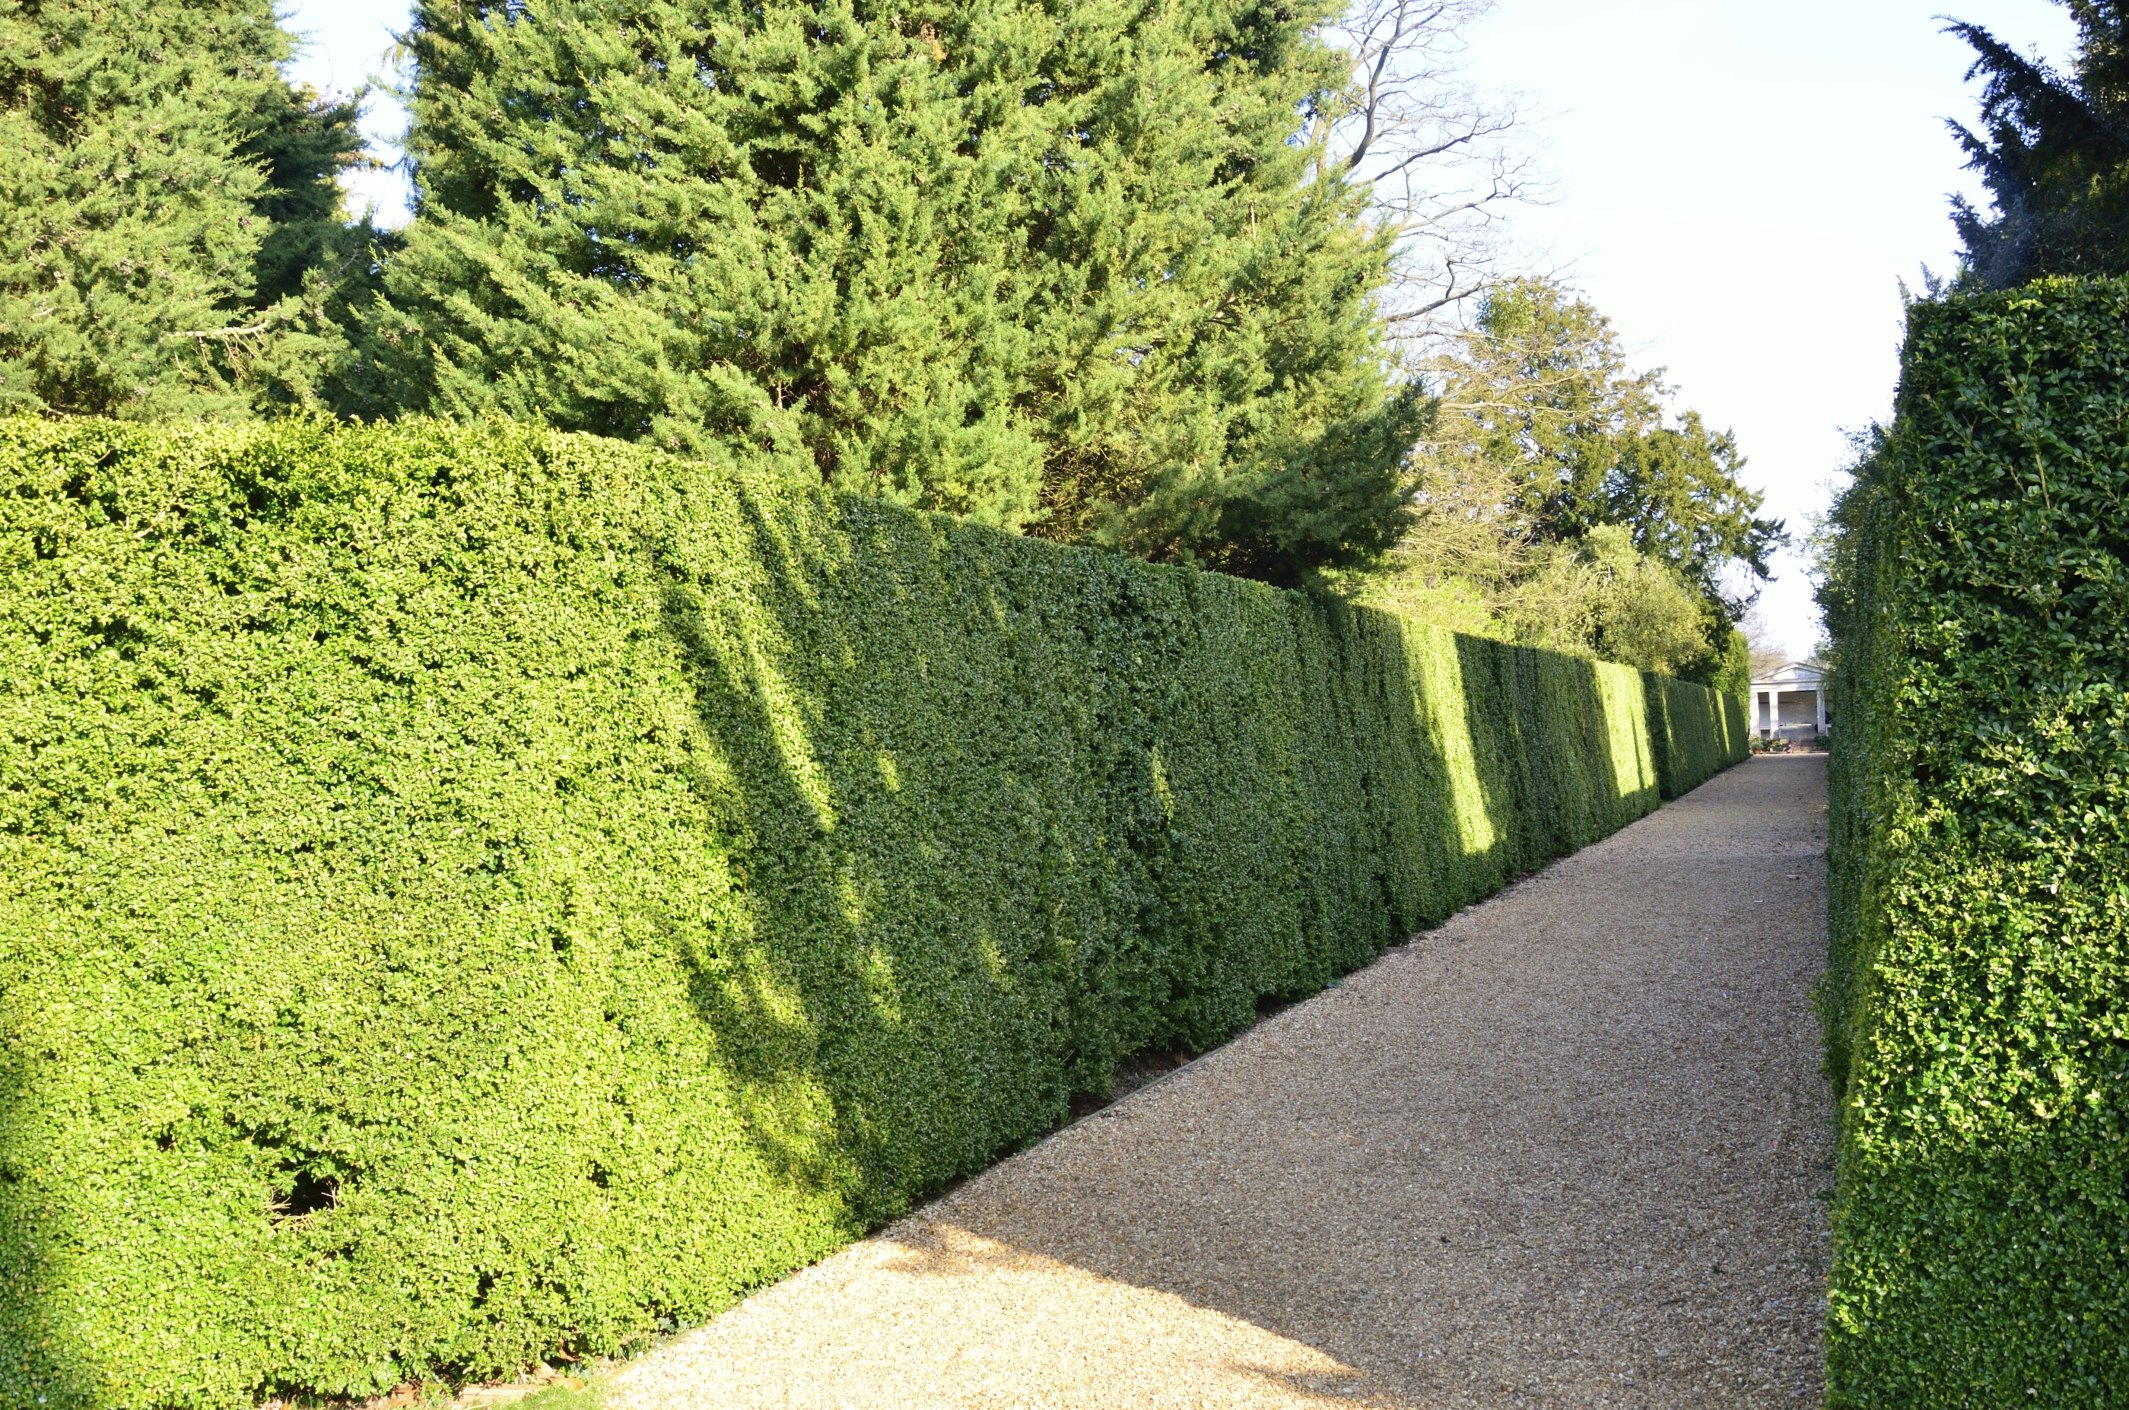 Hedge Bushes: Different Types Of Hedges (with Pictures)